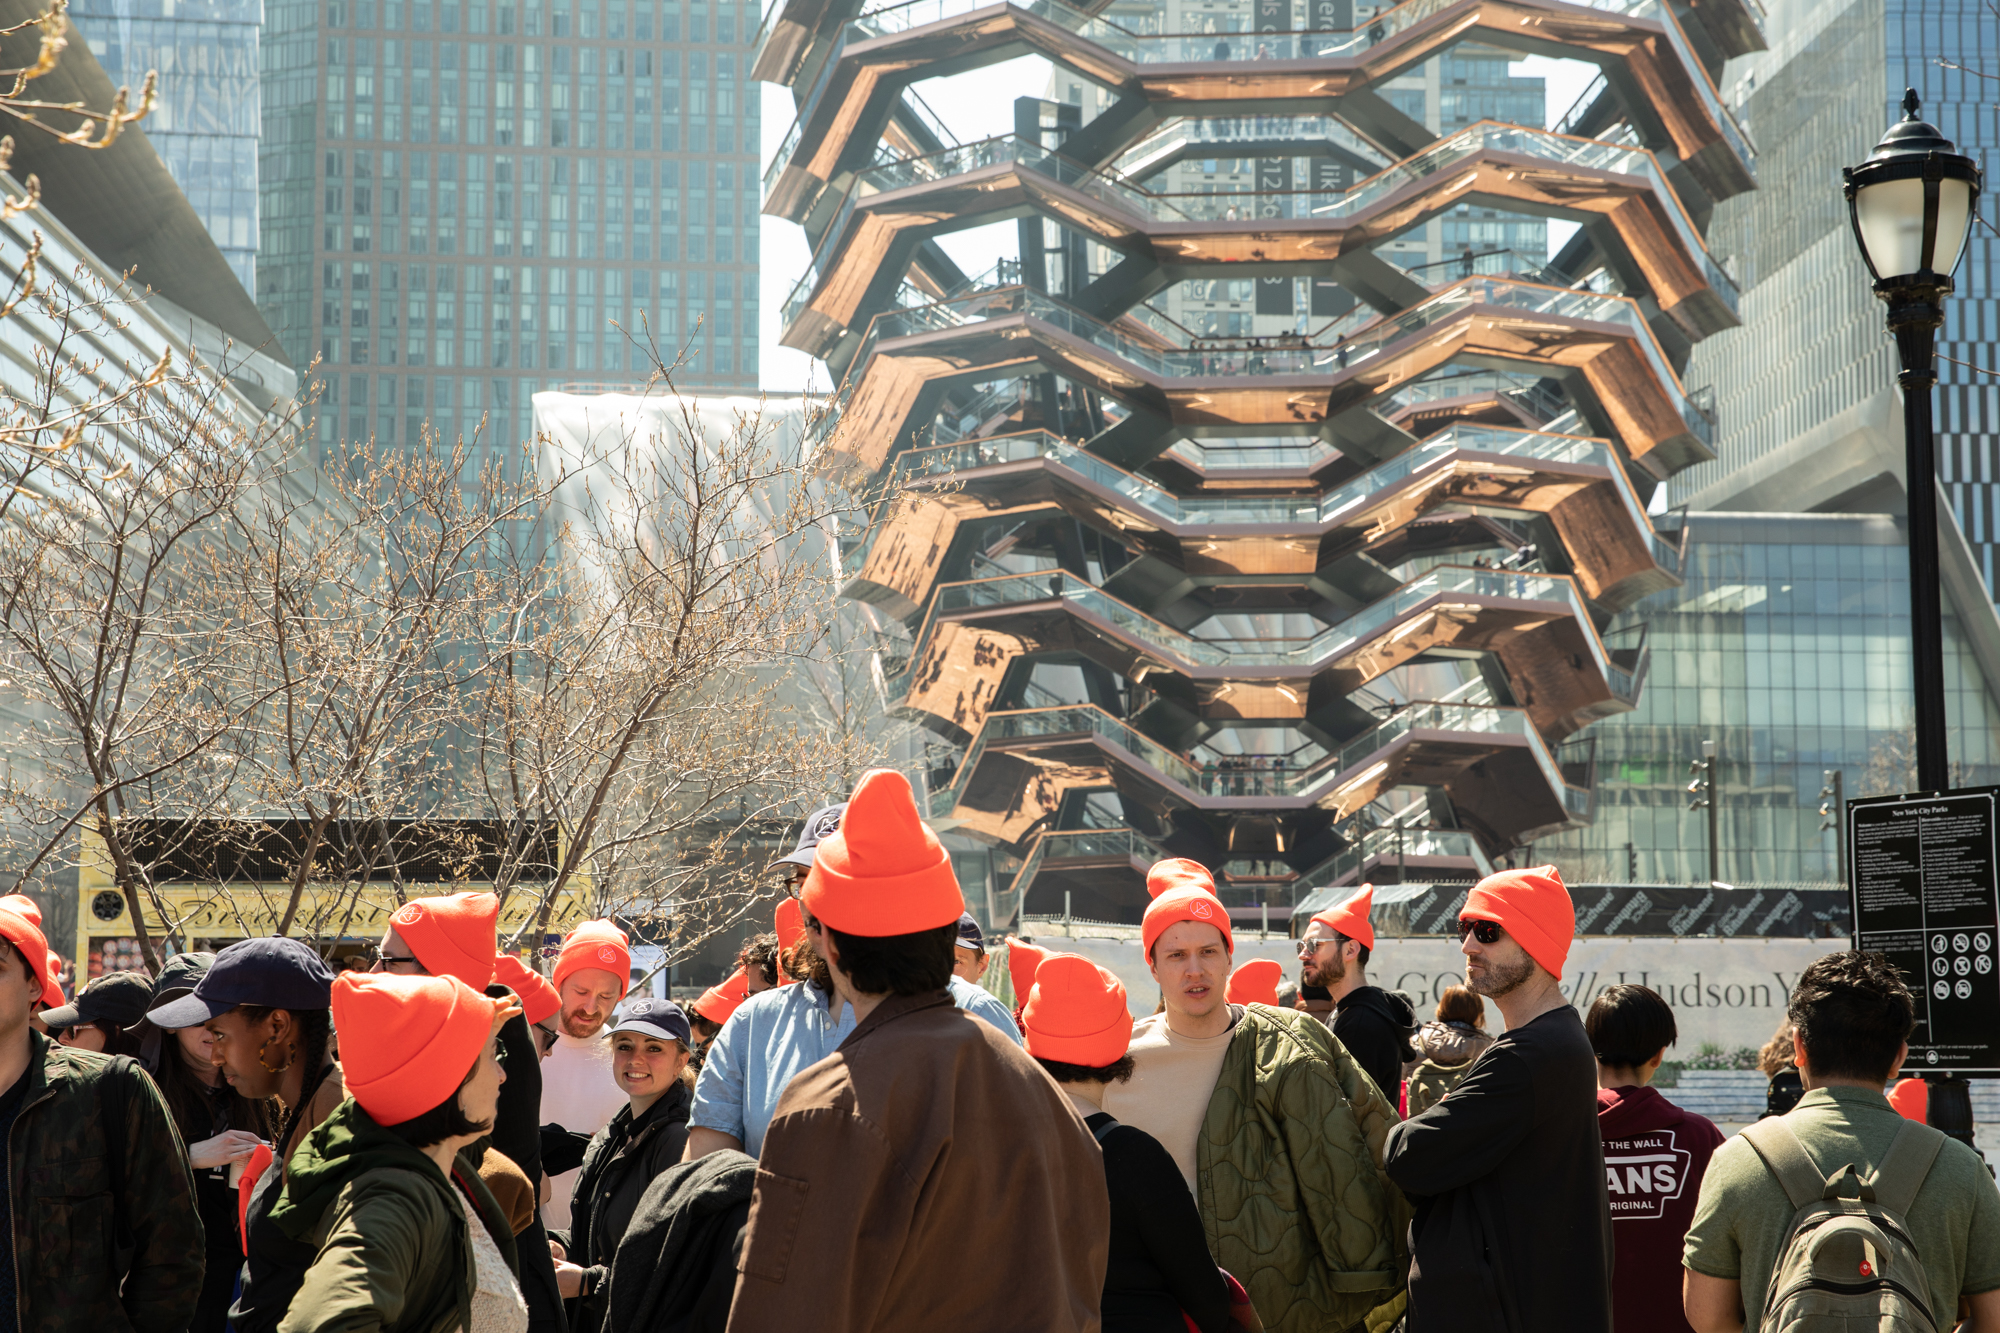 A sea of orange hats with the Vessel in the background.